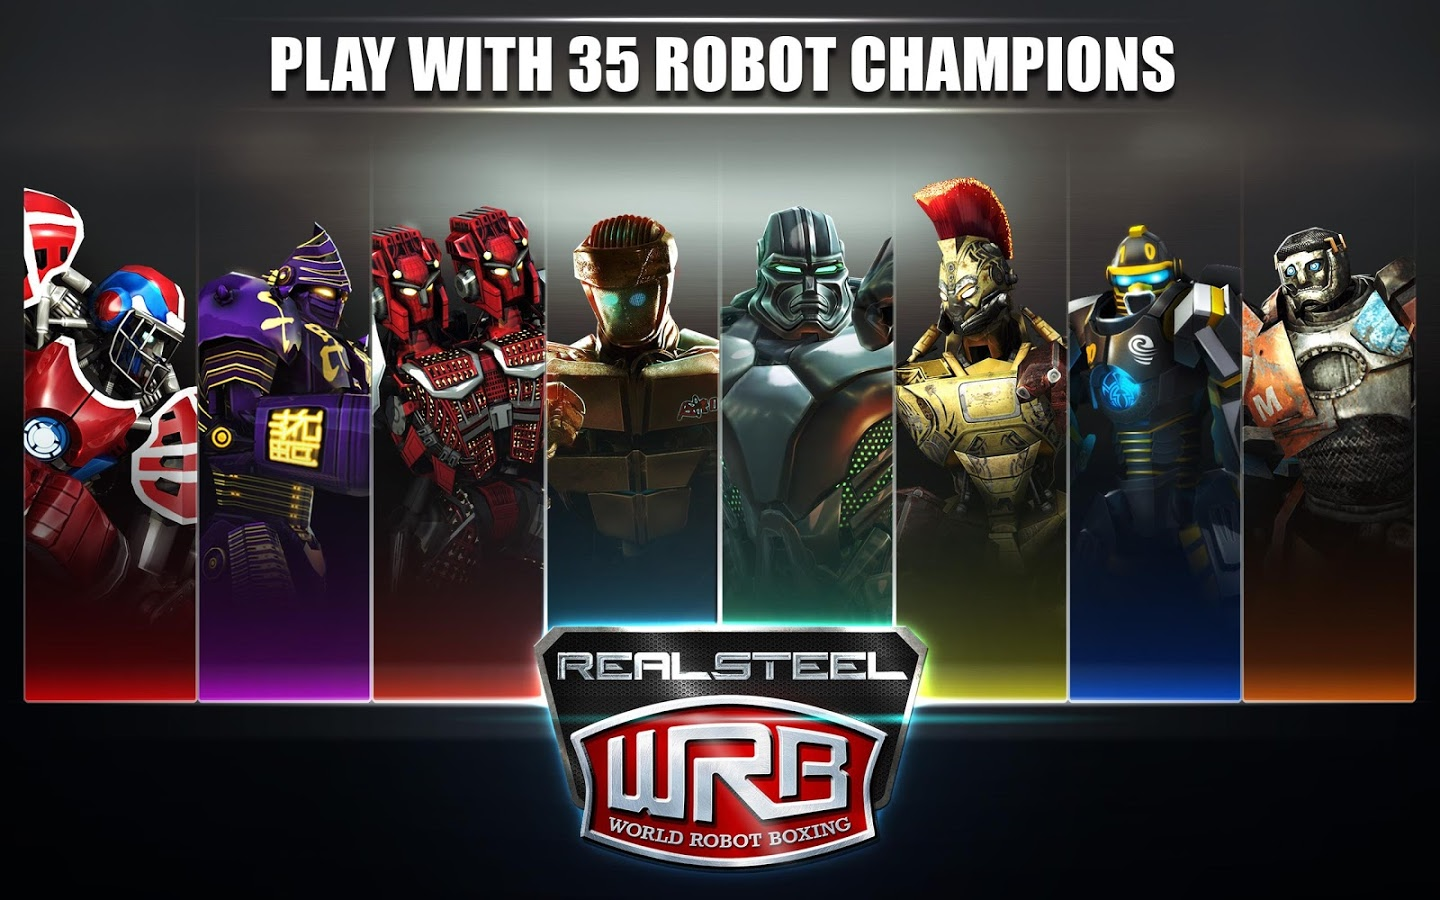 Real Steel World Robot Boxing1 تحميل لعبه Real Steel World Robot Boxing Apk v28.28.777 معدله